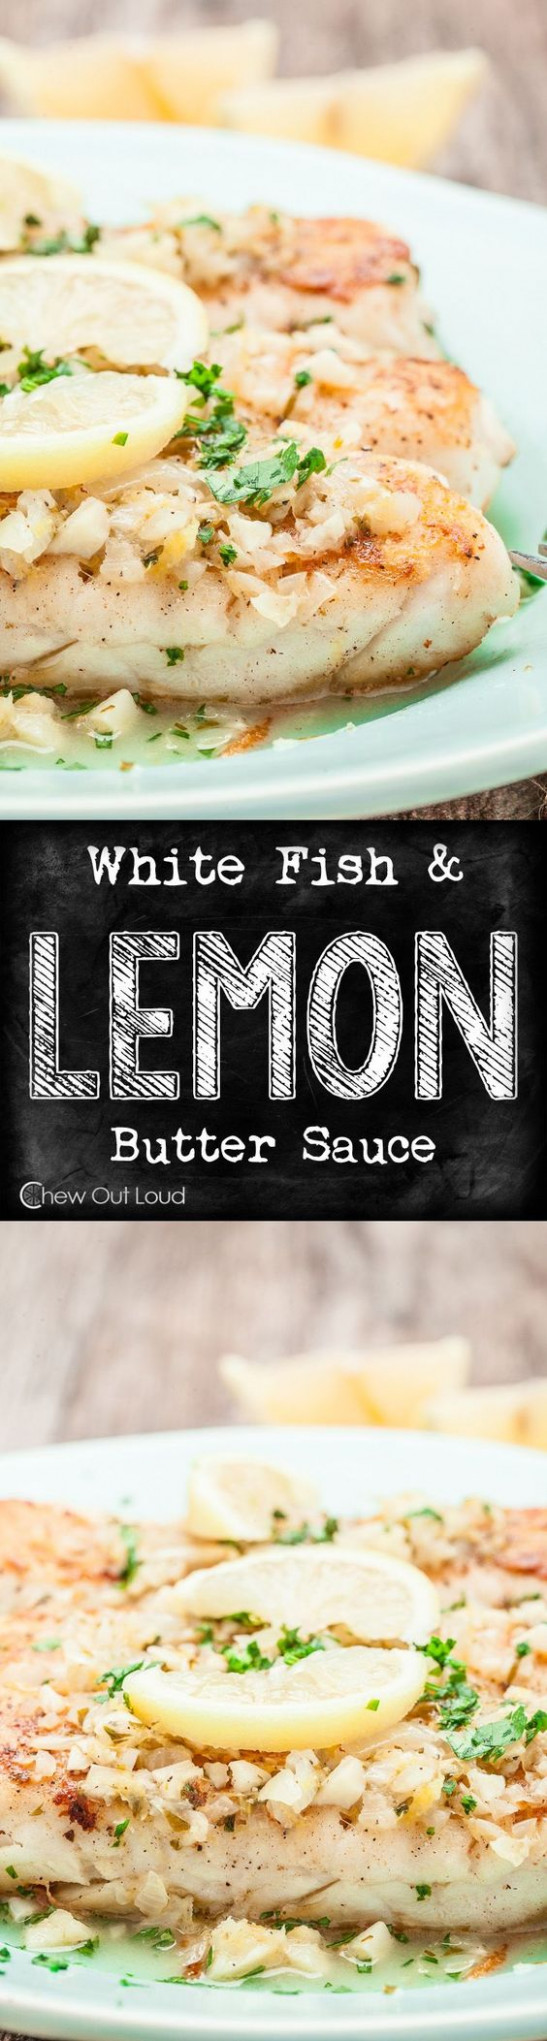 White Fish with Lemon Butter Sauce (+Giveaway) | Recipe ...